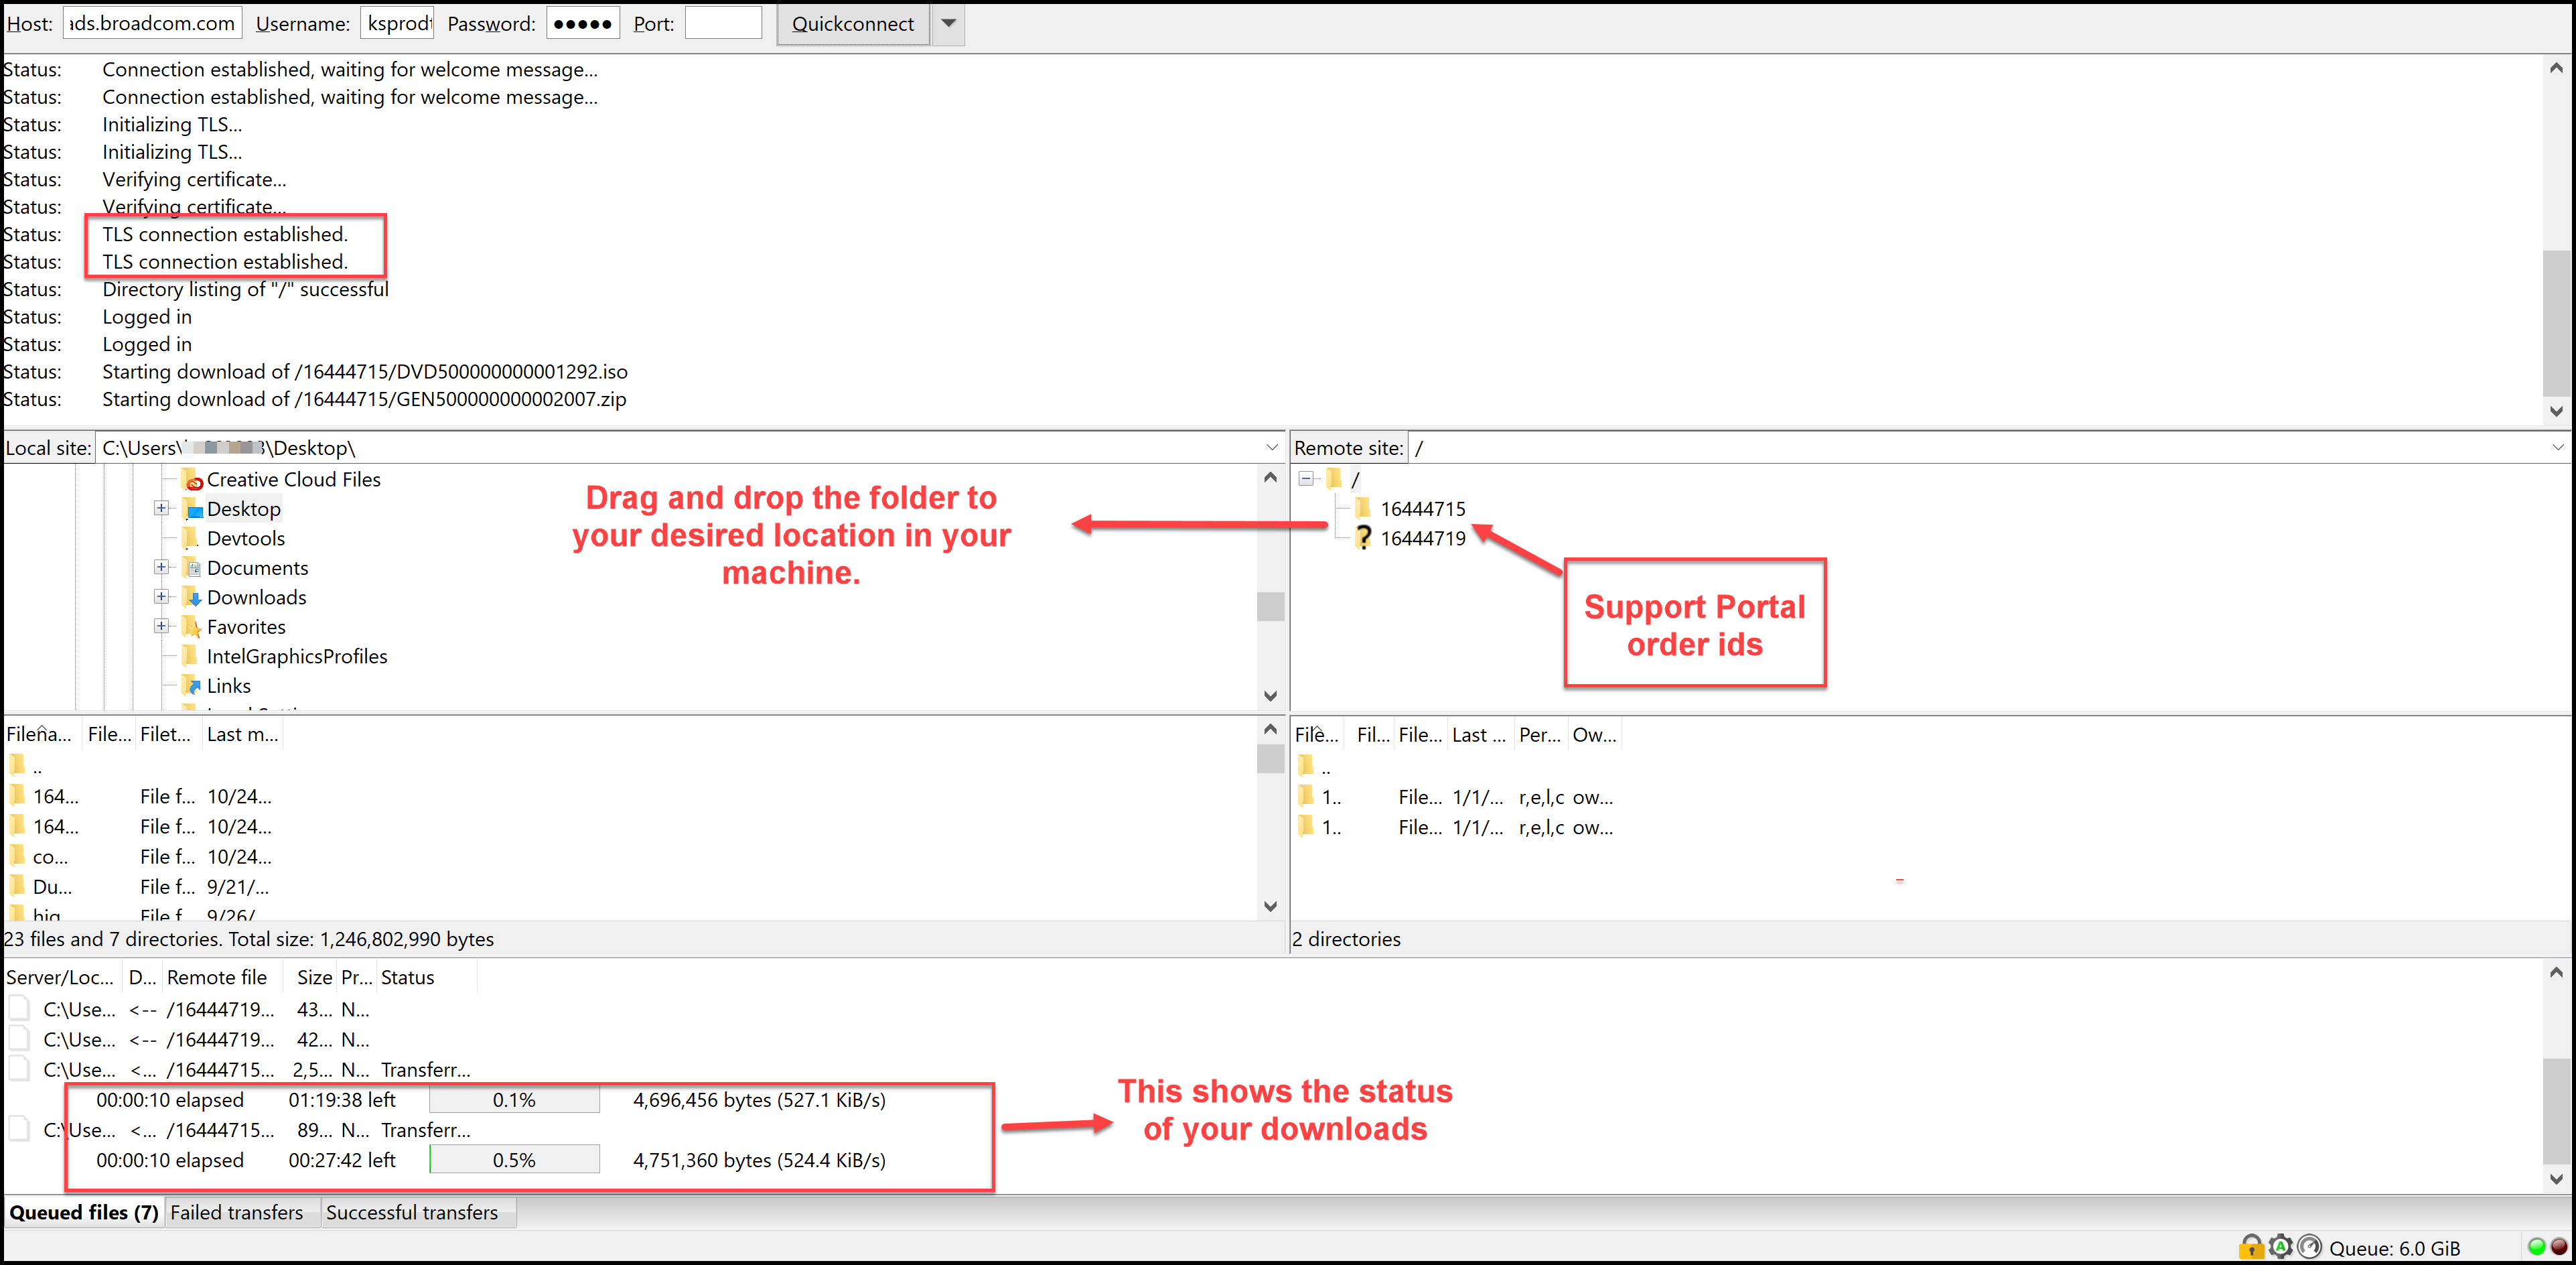 Ca Support Portal Filezilla product download